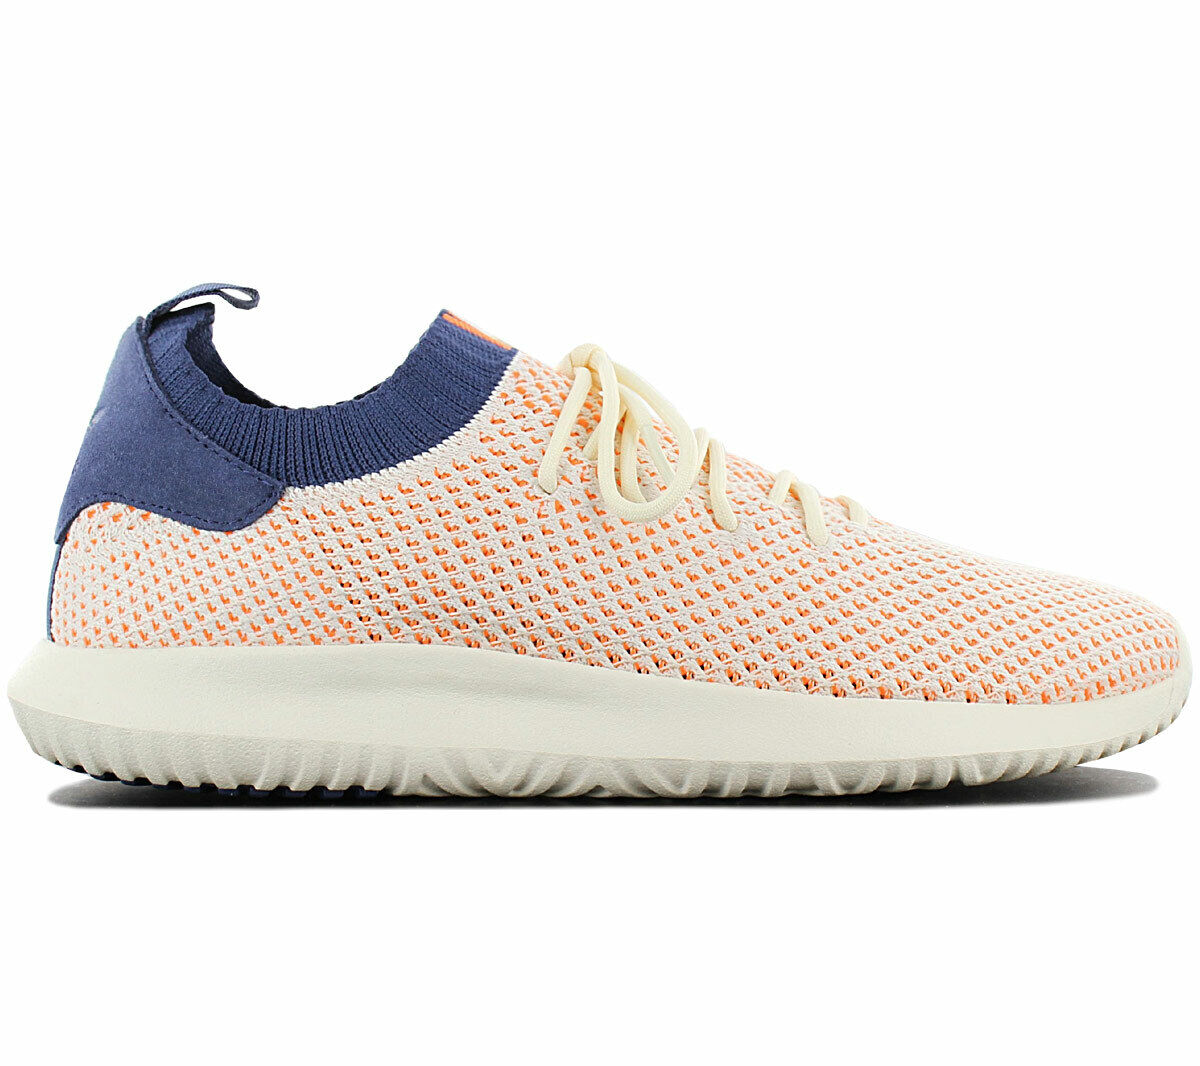 Adidas Originals tubular Shadow PK primeknit cortos ac8793 fashion zapatos nuevo